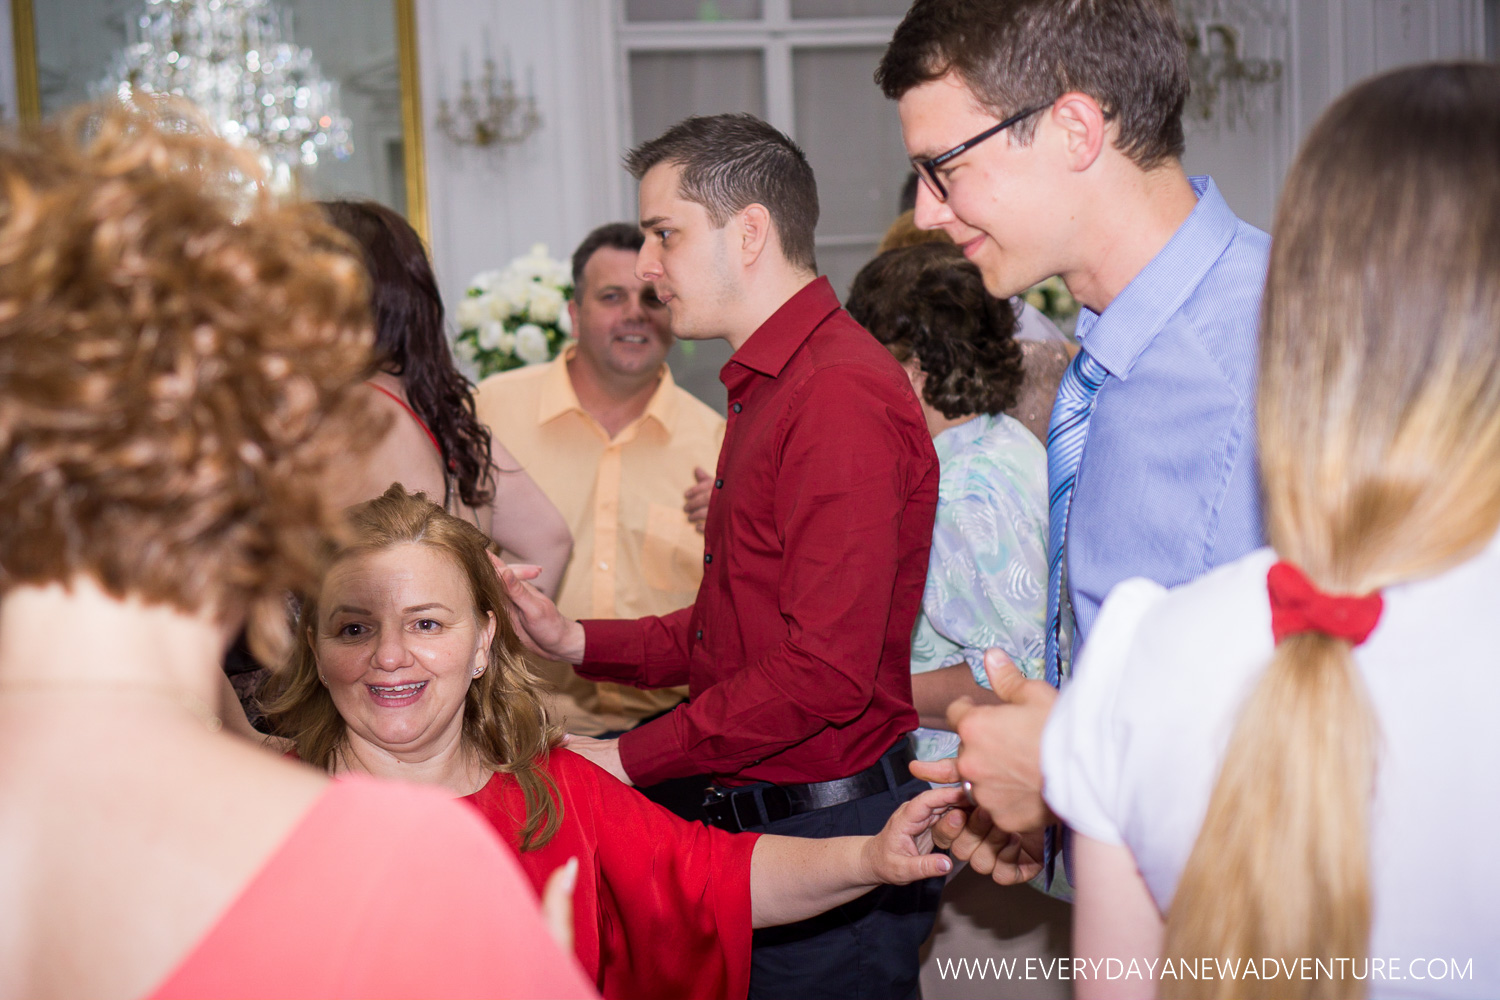 [SqSp1500-078] Budapest - Inez and Arni's Wedding!-560.jpg